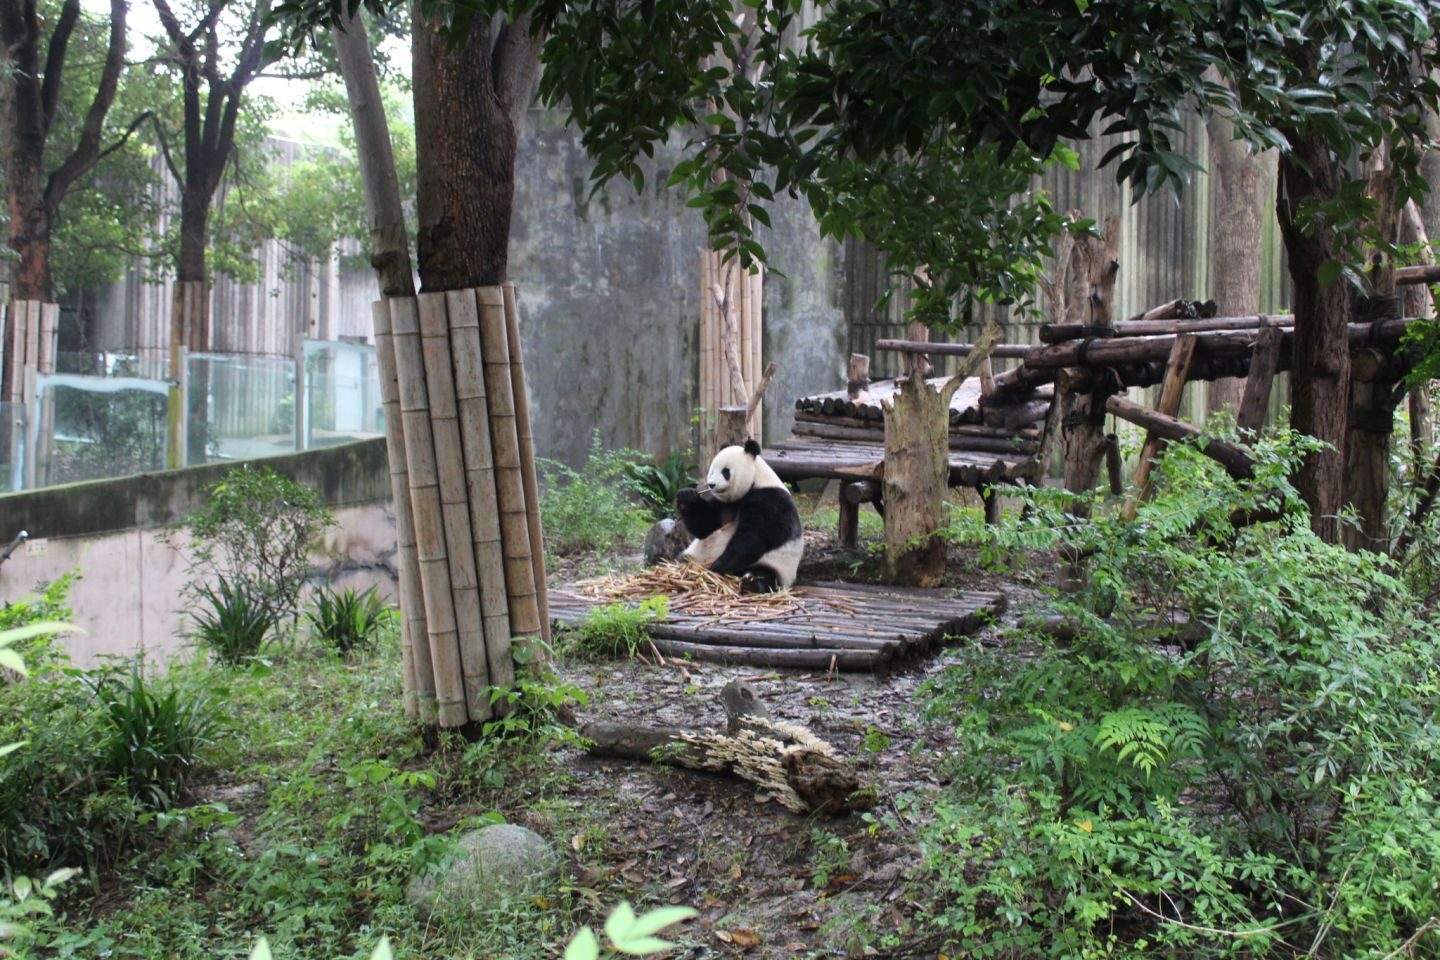 Visting Chengdu's Giant Panda Base